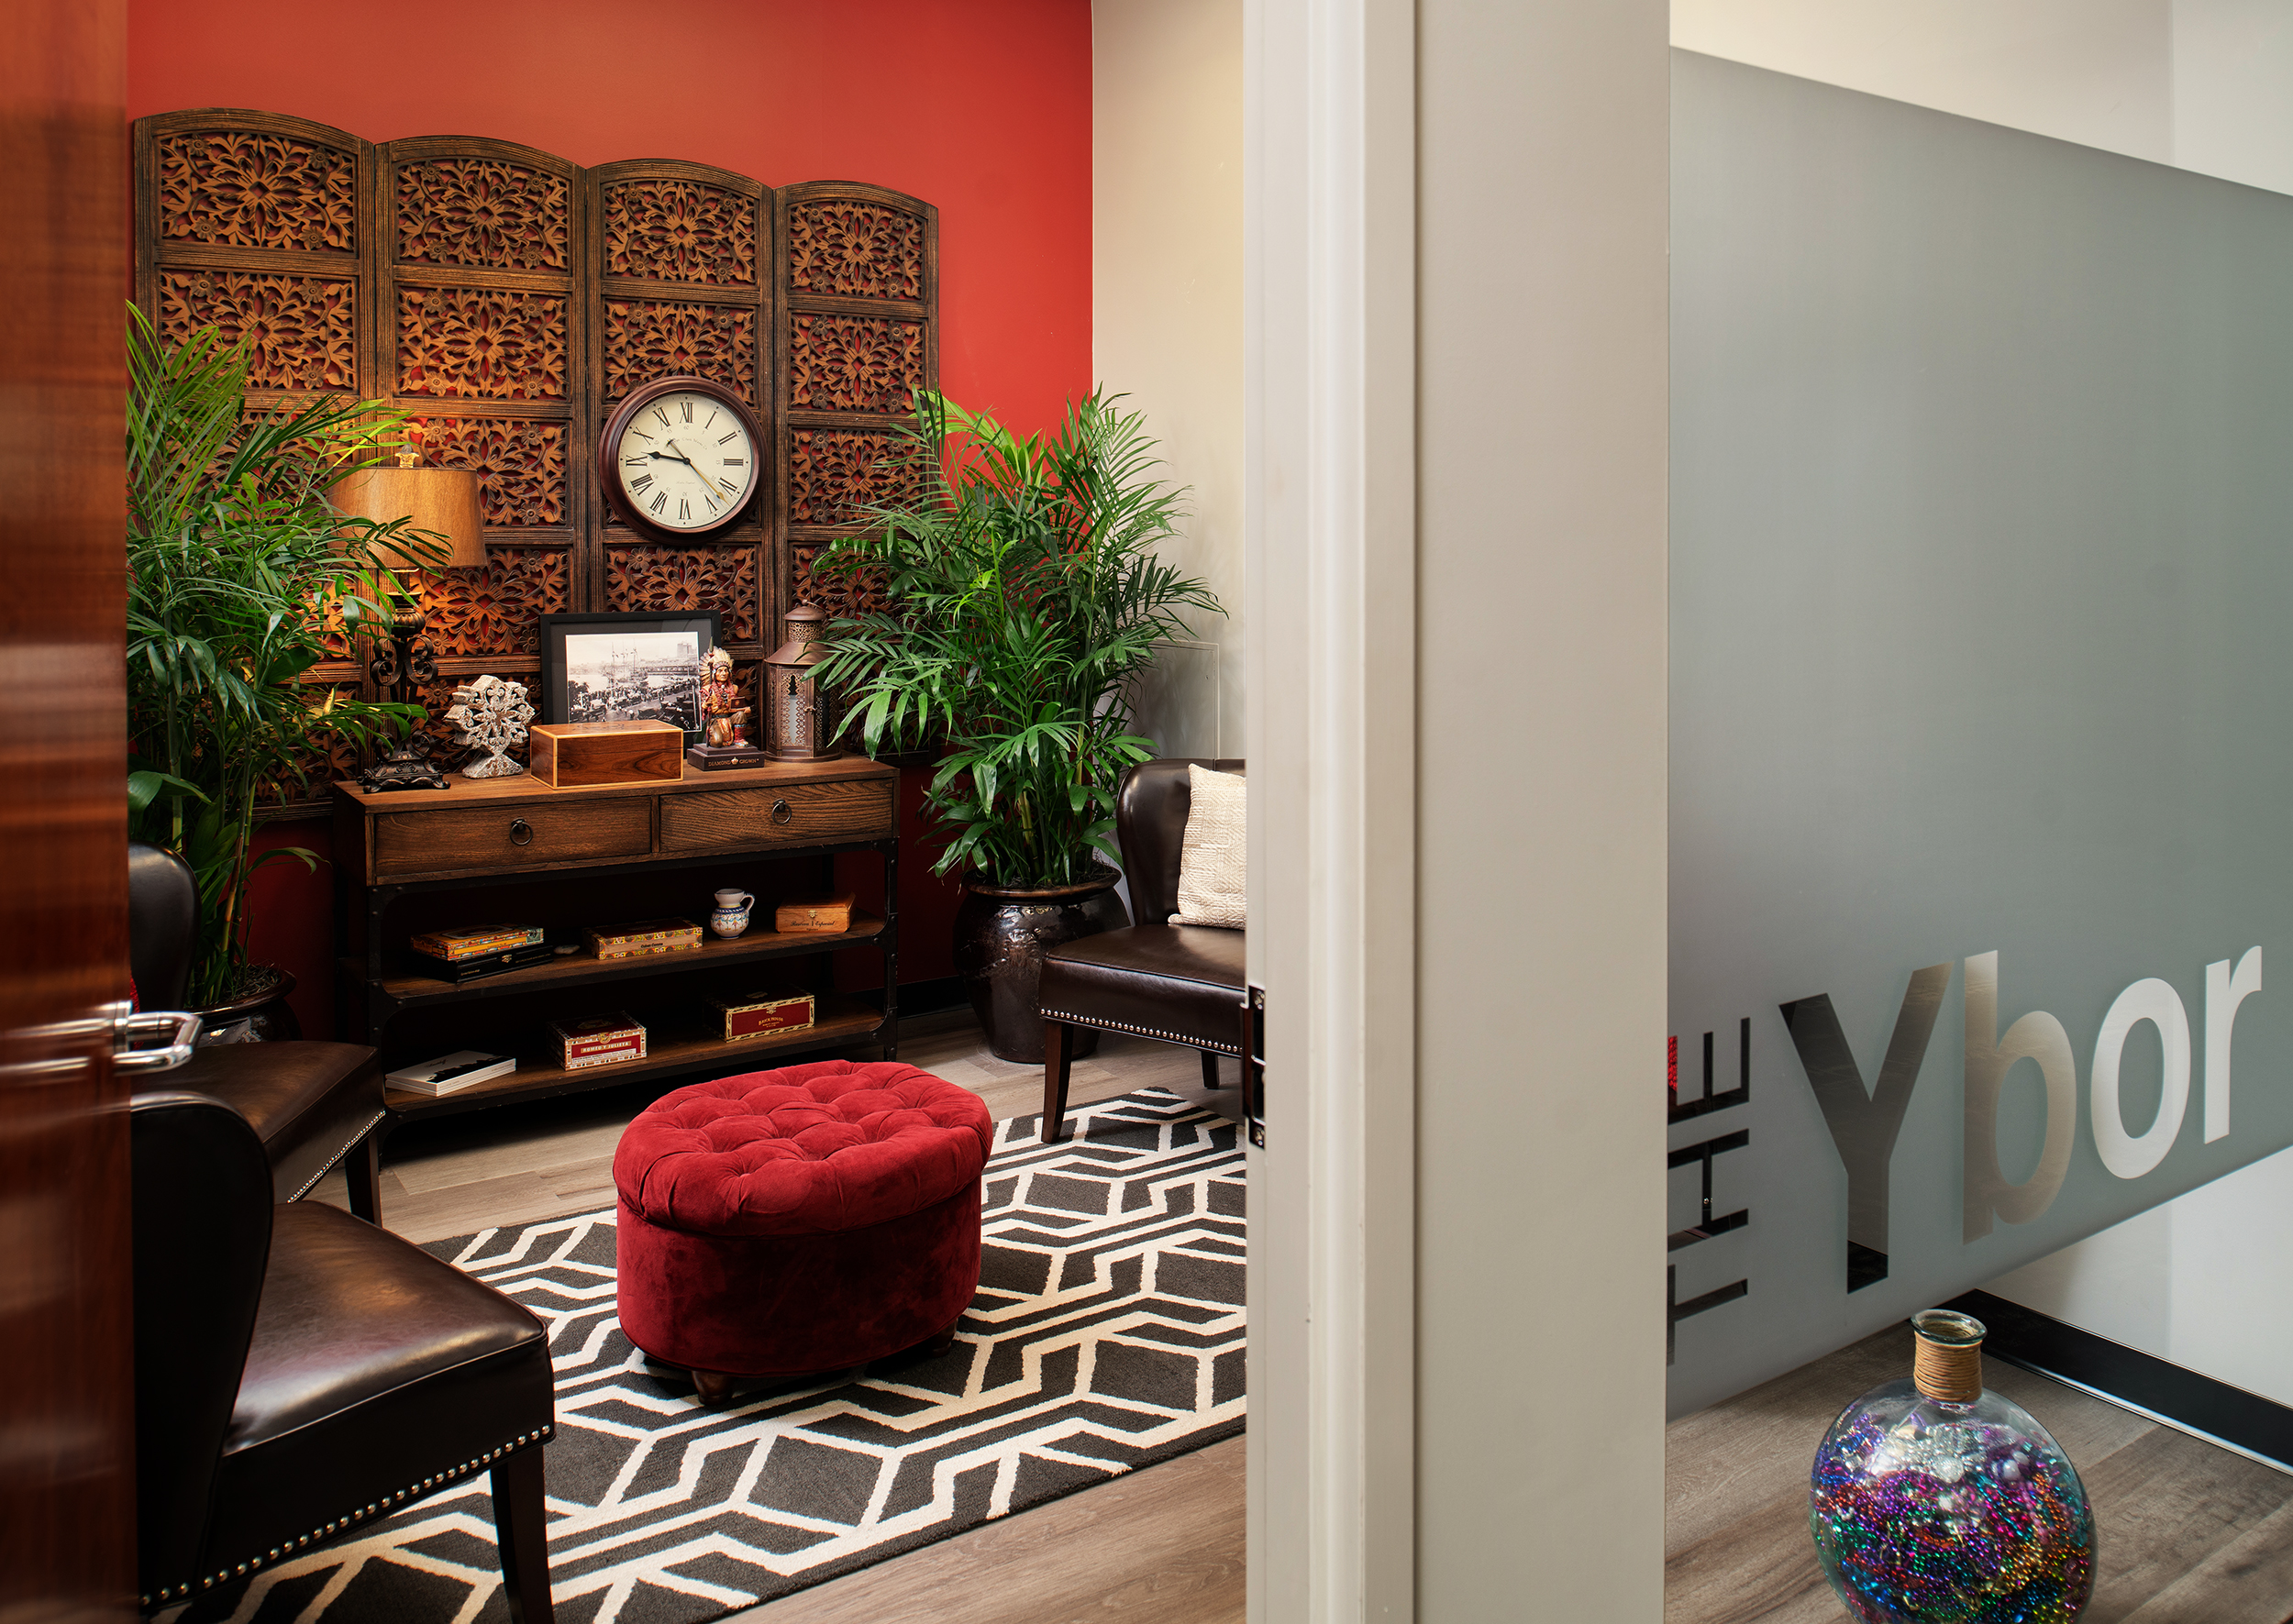 Create+Co : Vaco-Ybor Meeting Room